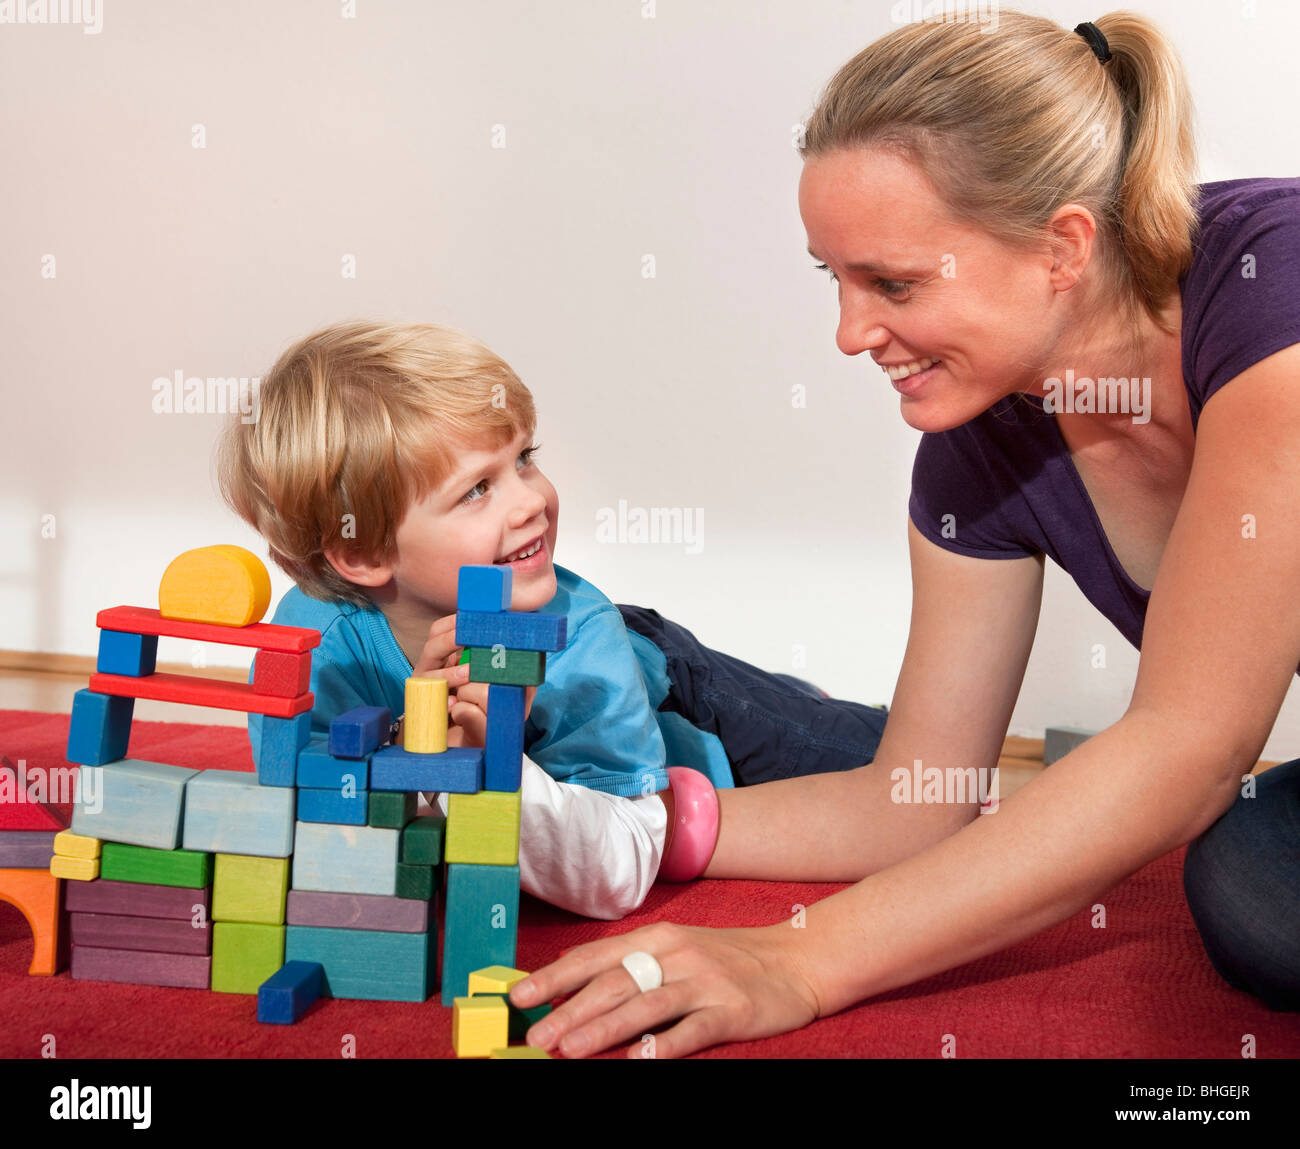 mother and son play with building blocks - Stock Image